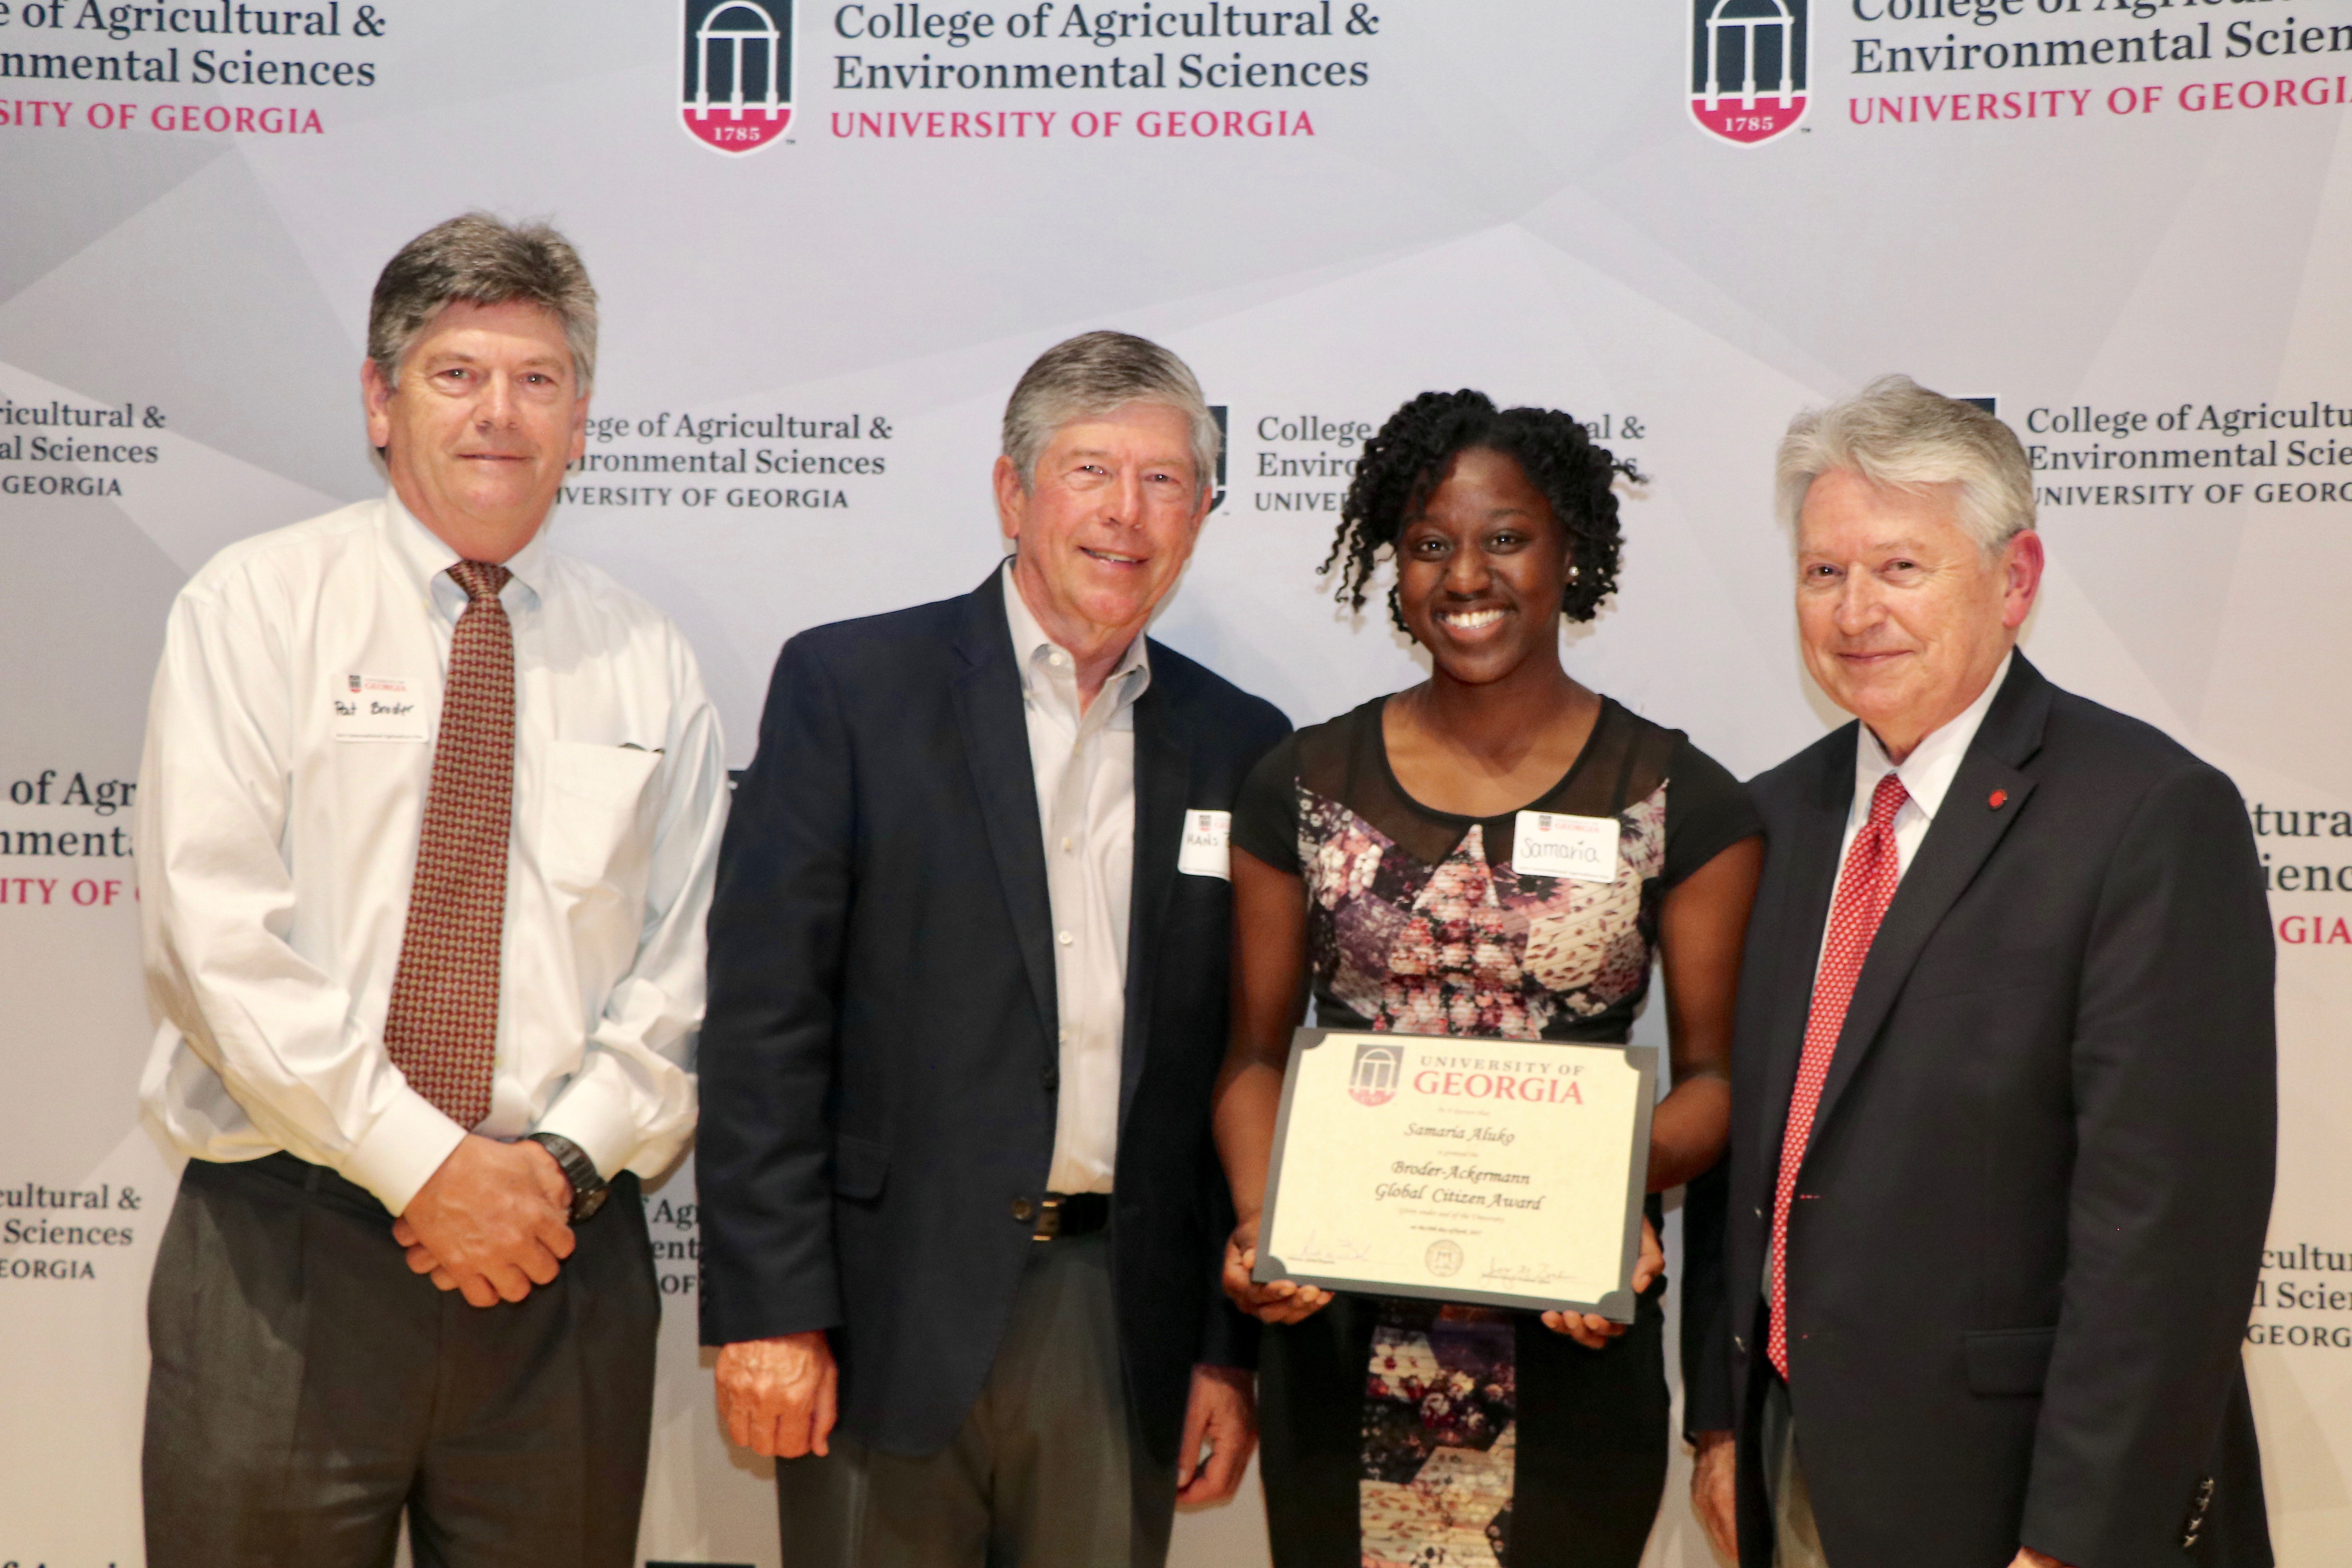 Patrick Broder and Hans Broder Jr., left, and Josef Broder, far right, congratulate Samaria Aluko, the inaugural winner of the Broder-Ackermann Global Citizen Award, on April 18 at CAES's seventh annual International Agriculture Day reception. Aluko will receive a $1,000 scholarship to support her work helping to provide health care to underserved communities.